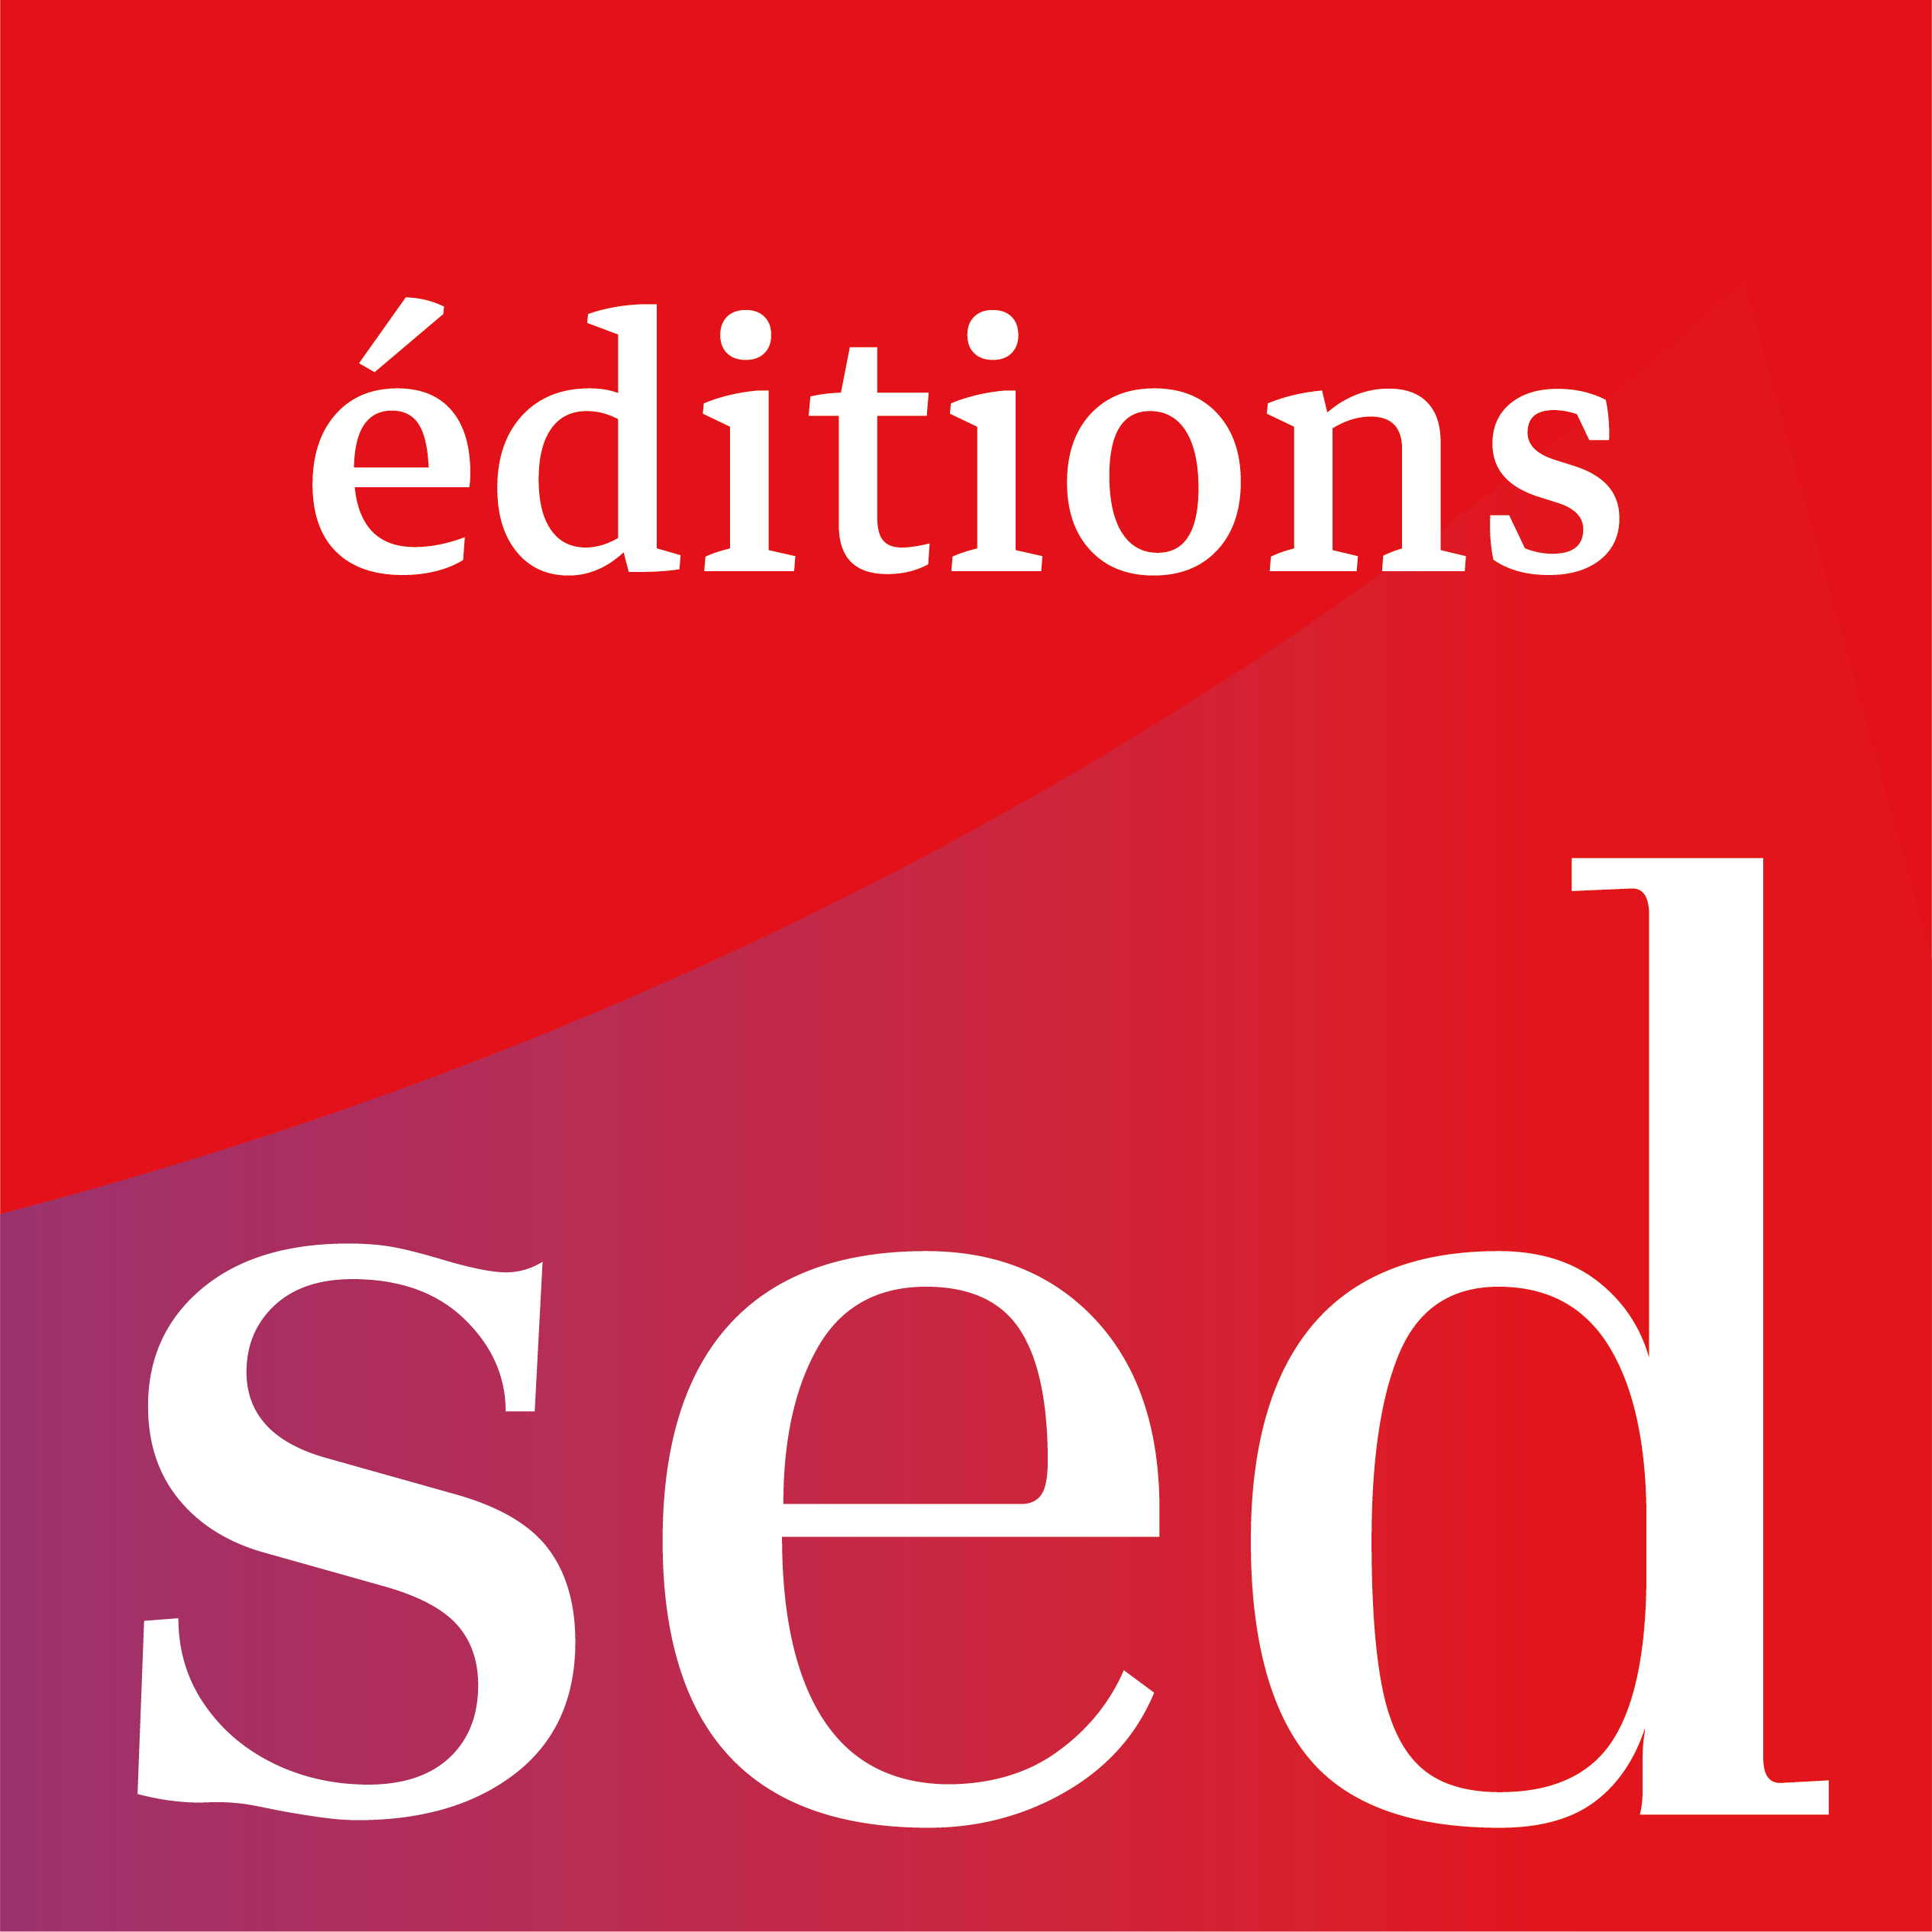 Editions Sed